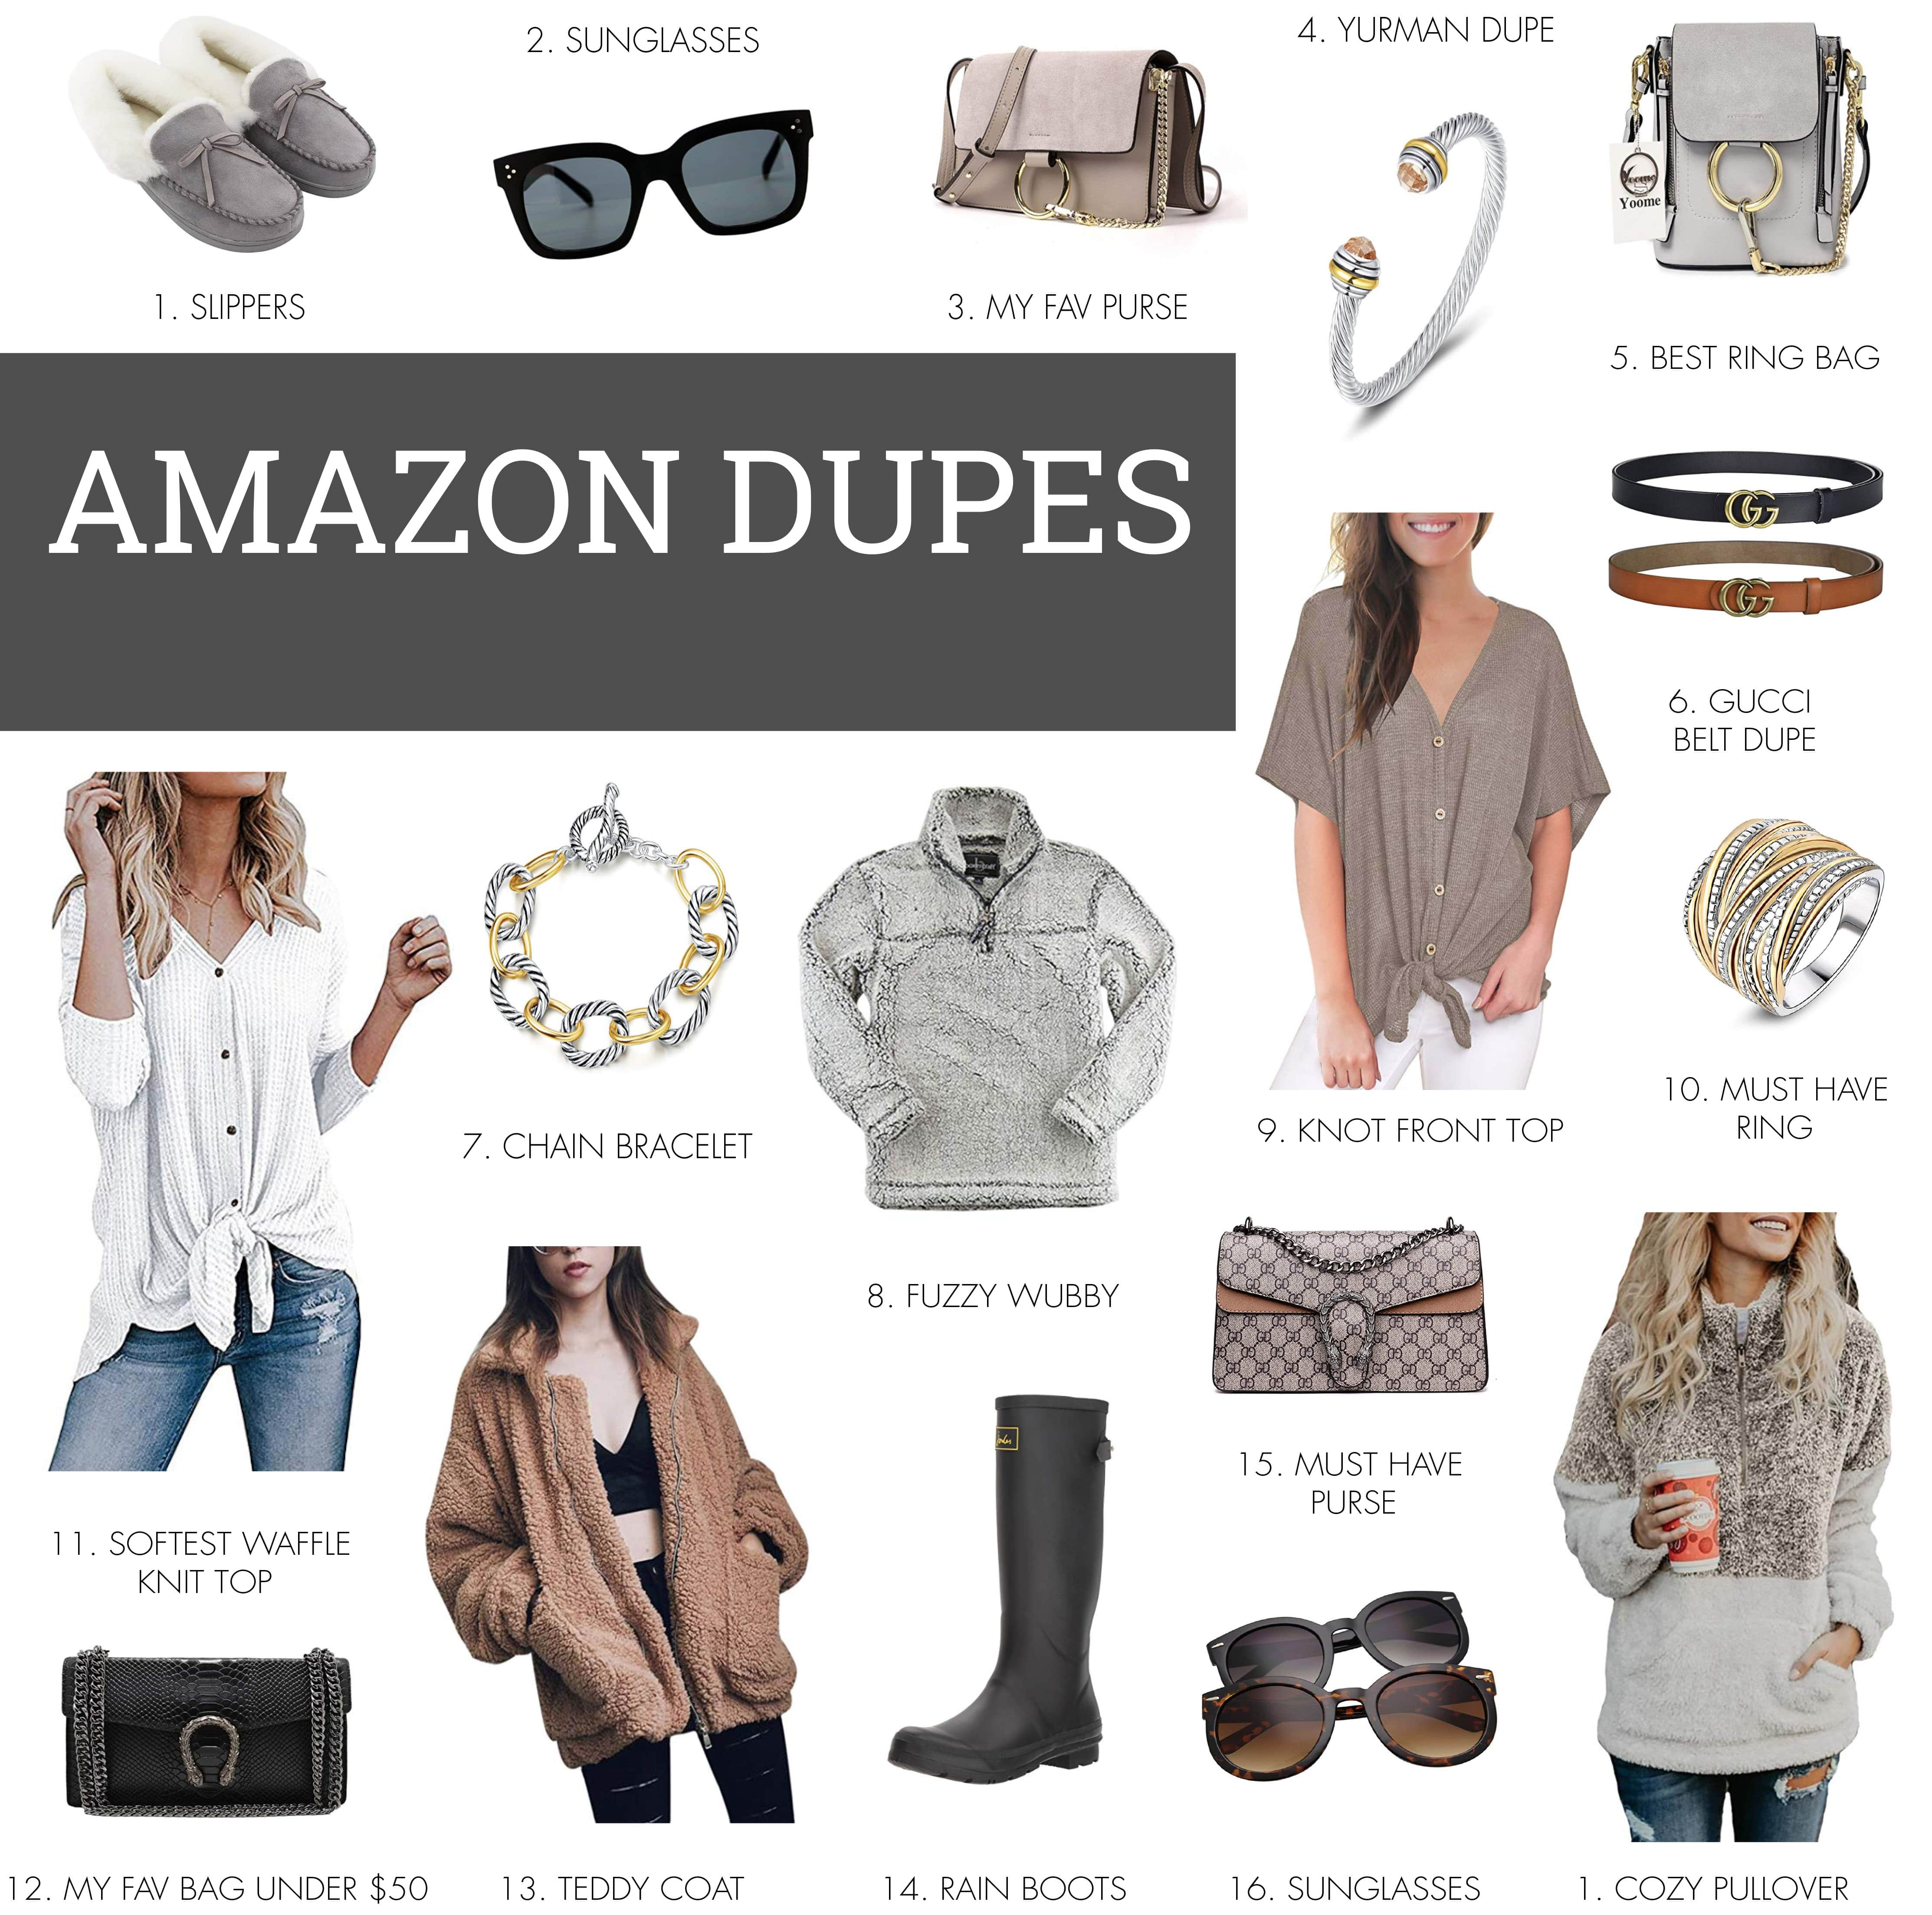 b6eac6cce My Favorite Amazon Designer Dupes | Life By Lee